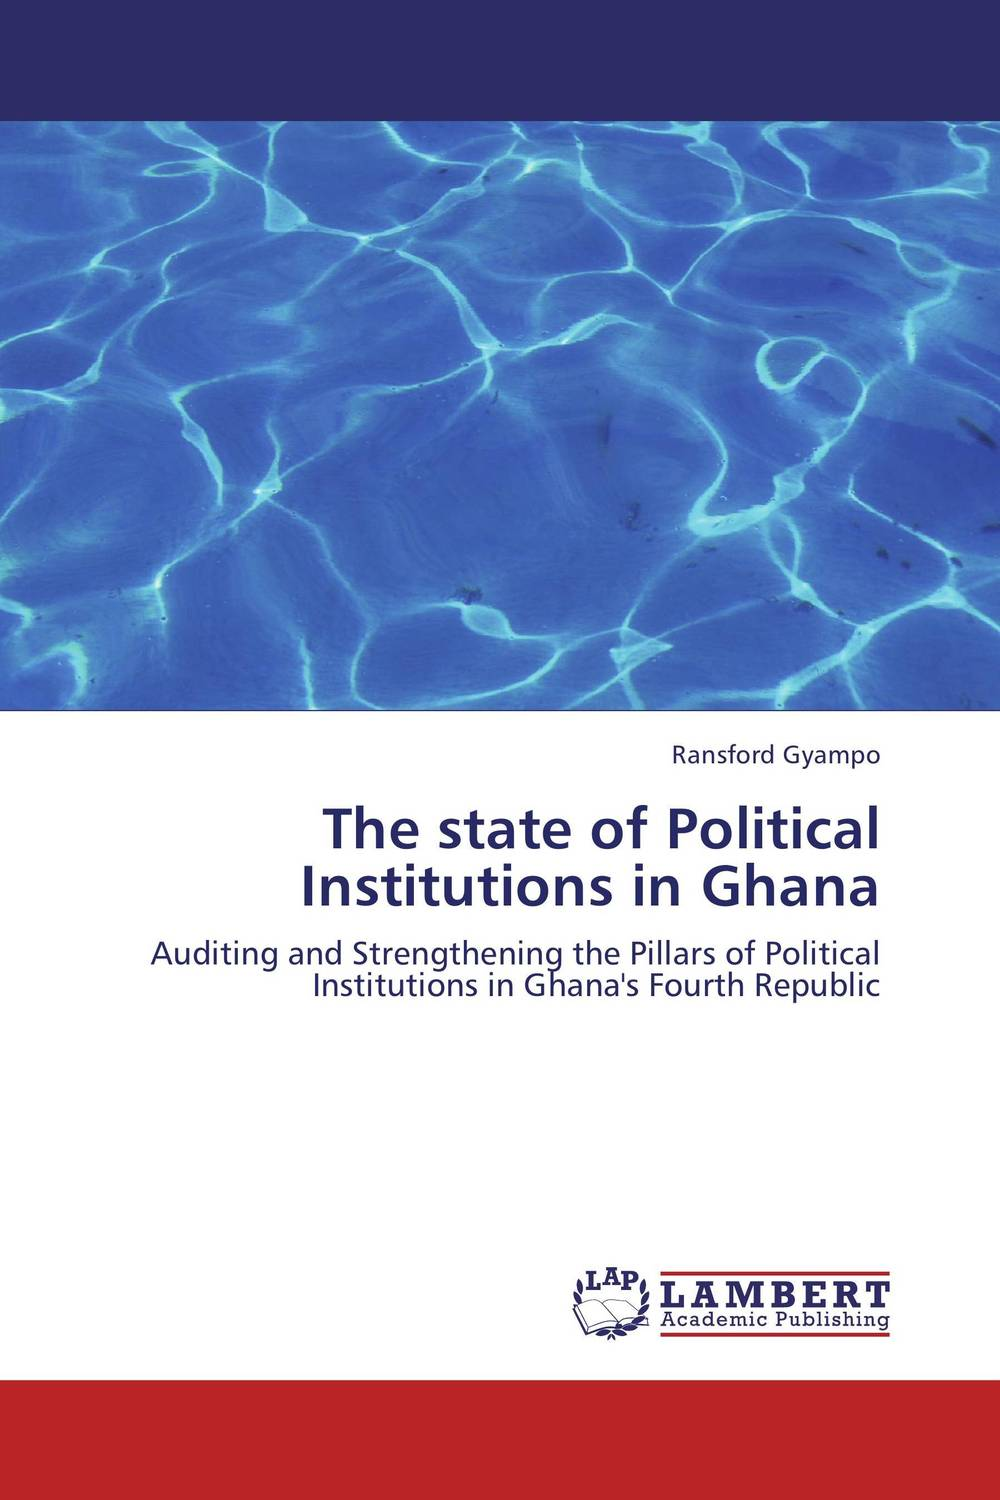 The state of Political Institutions in Ghana the harmattan dust in ghana